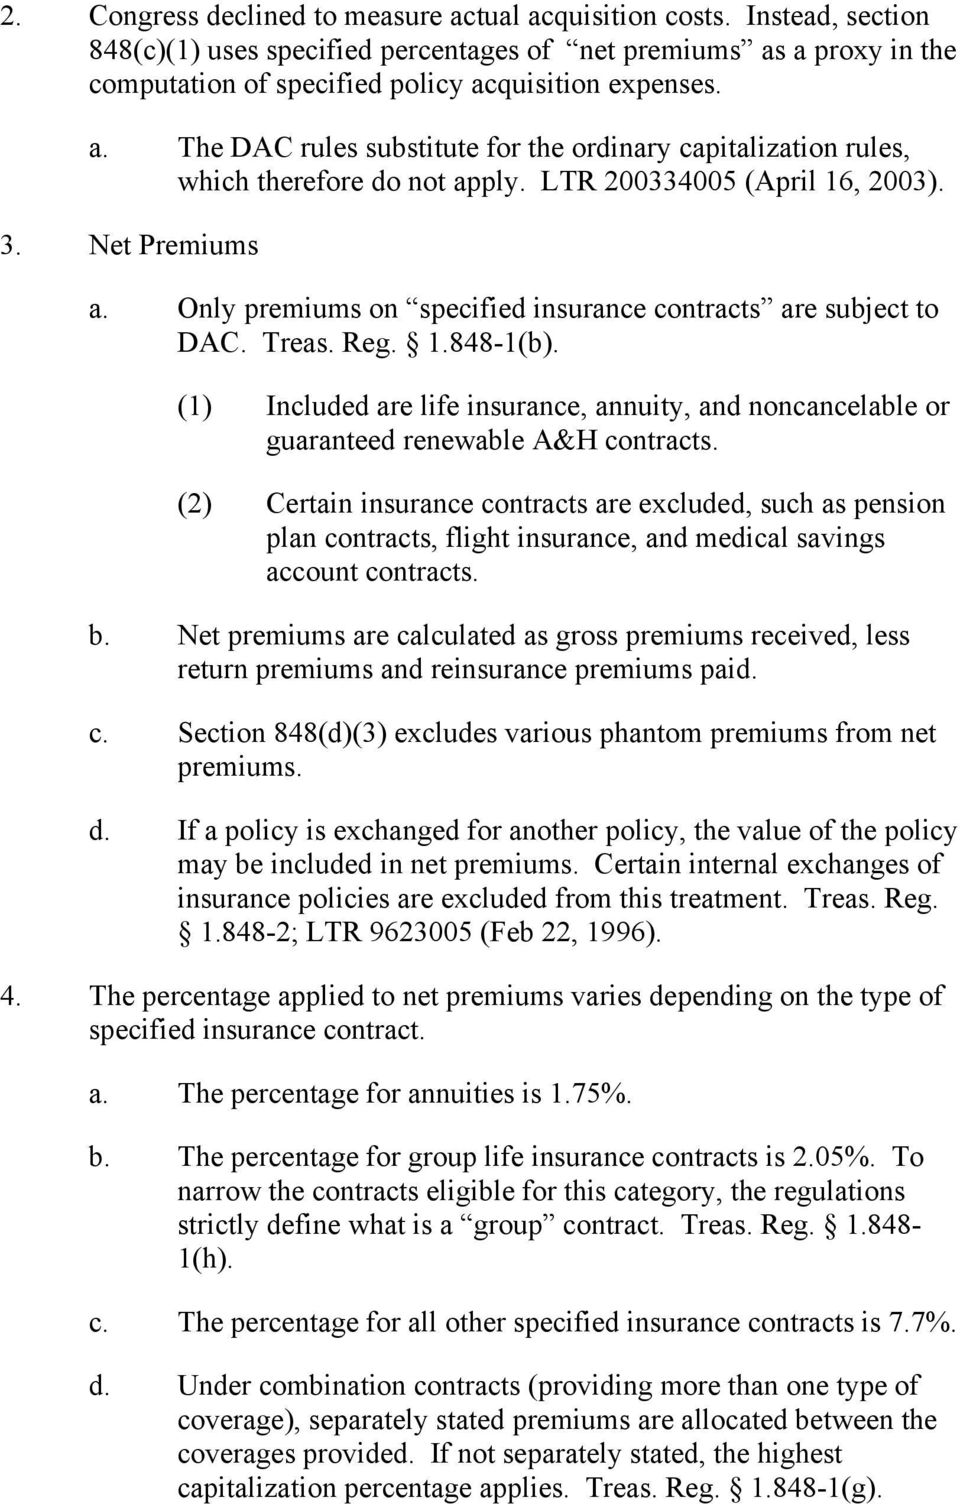 Only premiums on specified insurance contracts are subject to DAC. Treas. Reg. 1.848-1(b). (1) Included are life insurance, annuity, and noncancelable or guaranteed renewable A&H contracts.